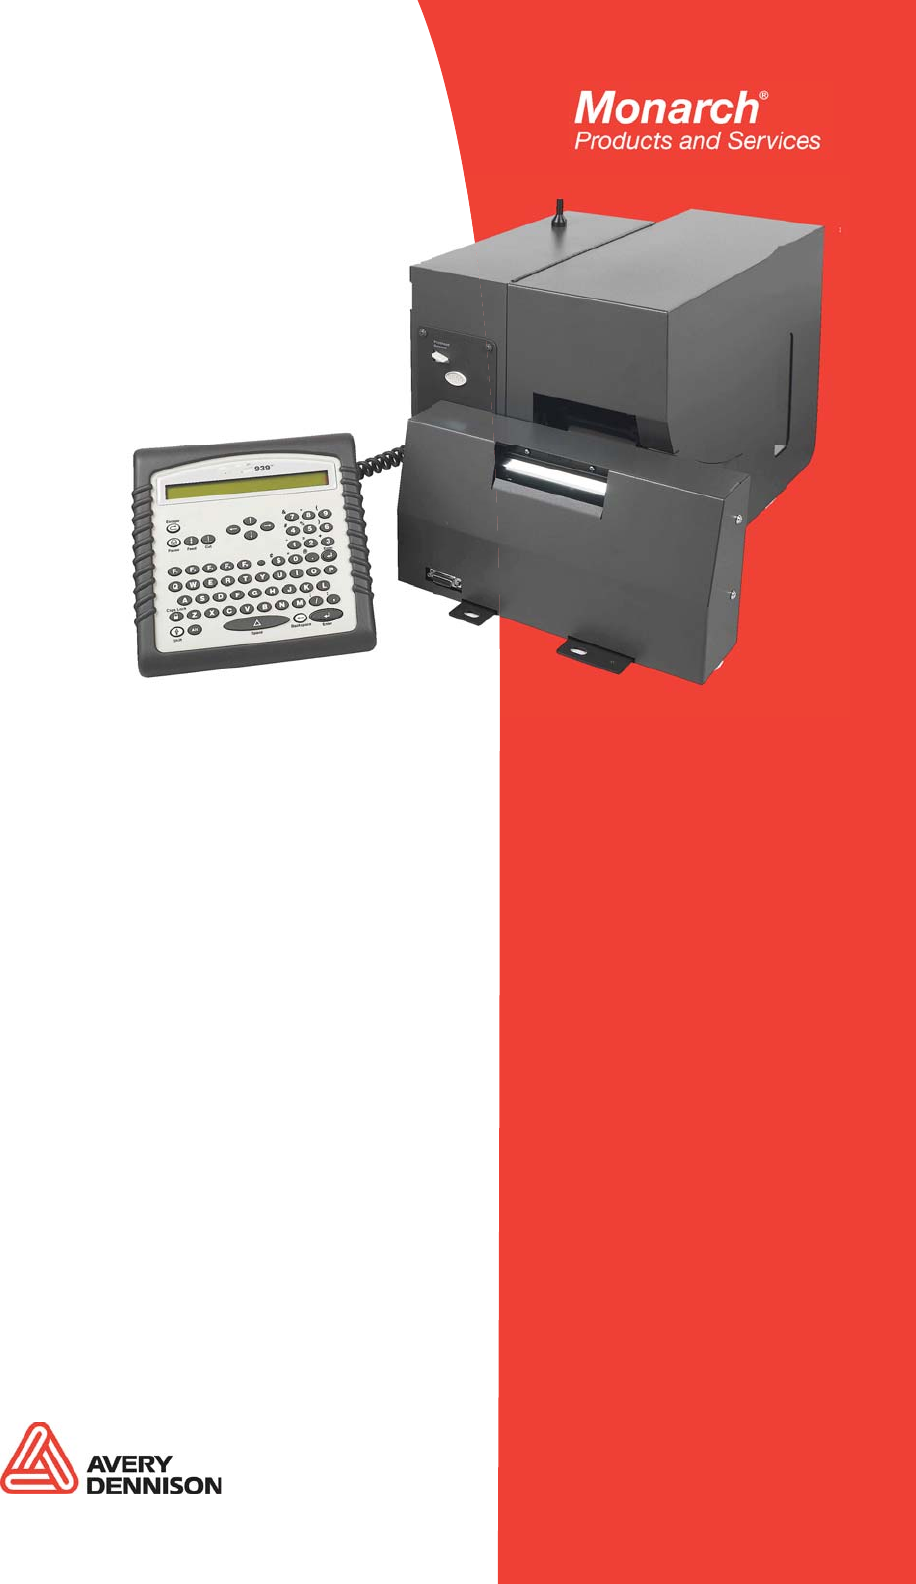 Paxar Monarch 9860 Printer User Manual